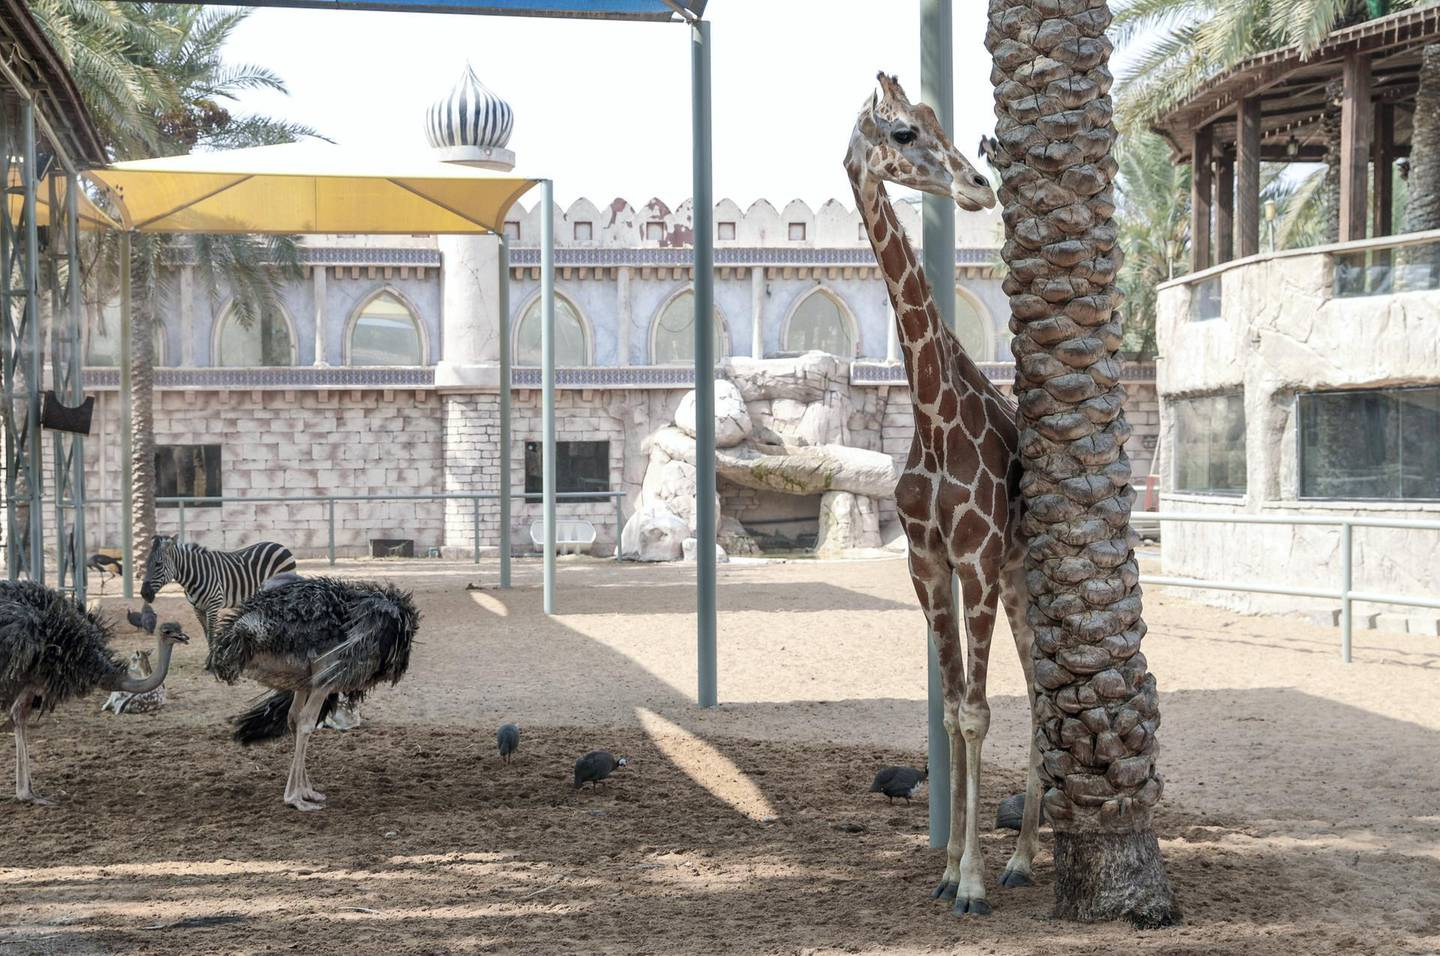 Abu Dhabi, United Arab Emirates, August 4, 2019.  Breakfast with giraffes at the Emirates Park Zoo.  Amy the giraffe before breakfast. Victor Besa/The NationalSection:  NAReporter:  Sophie Prideaux